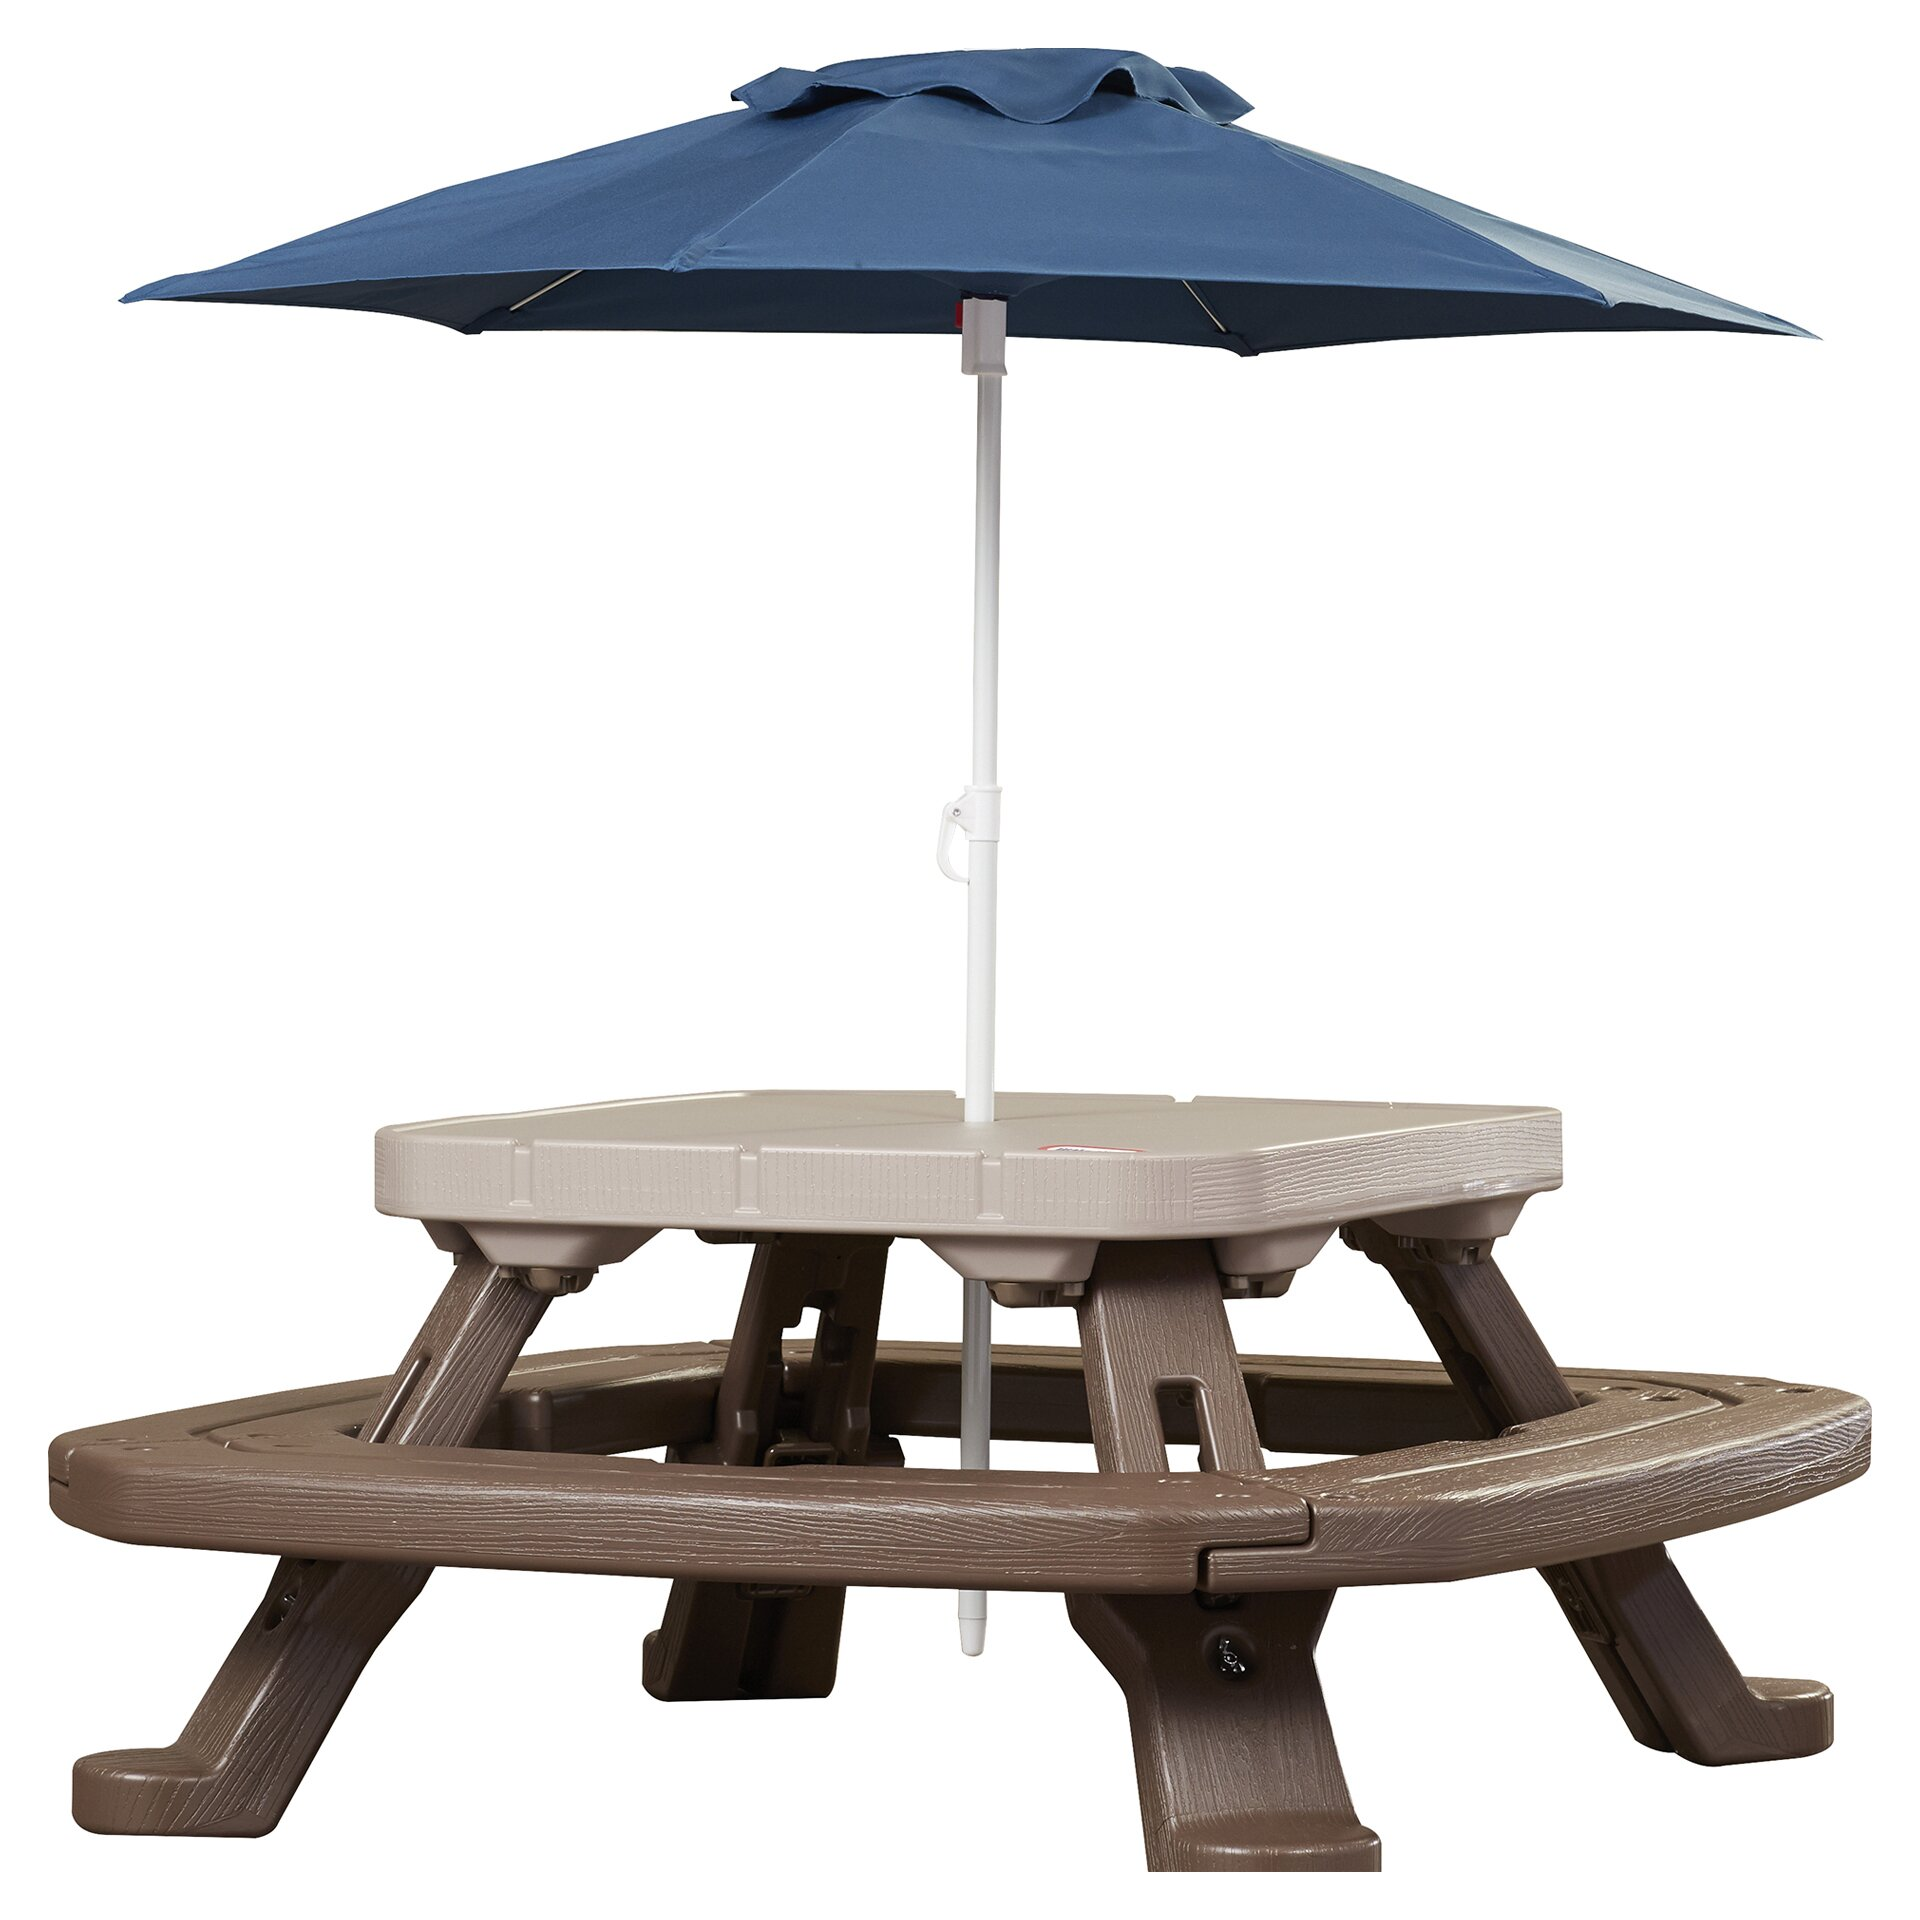 Umbrella For Picnic Table : ... Adventures Fold n Store Umbrella Picnic Table & Reviews  Wayfair